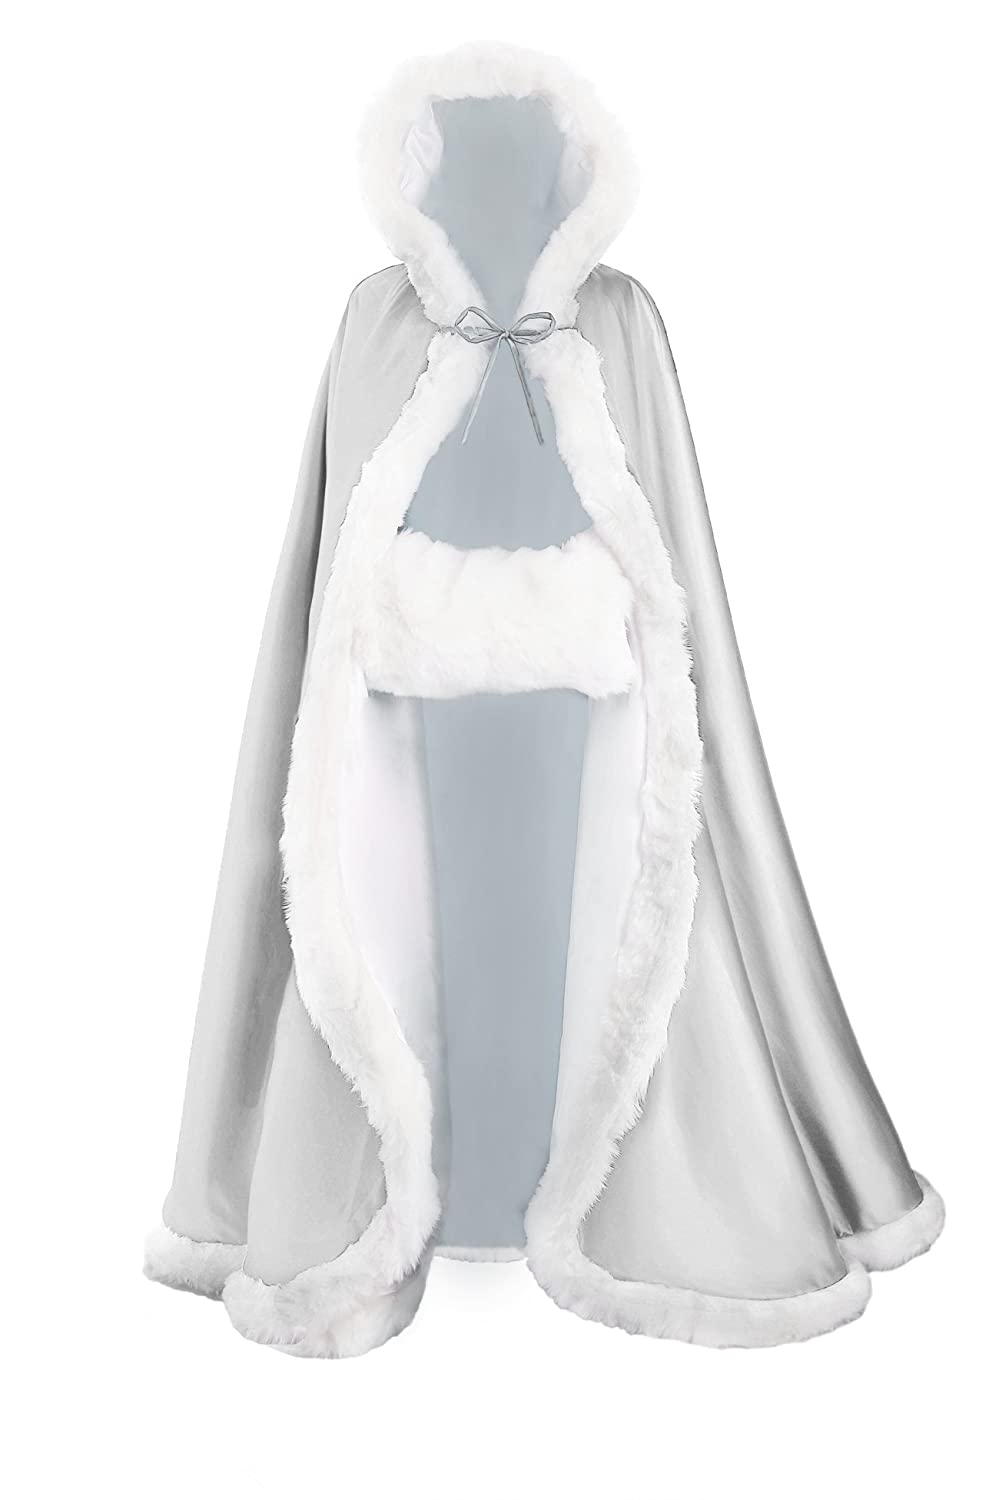 Wedding Cape Hooded Cloak for Bride Winter Reversible with Fur Trim Free Hand Muff Full Length 55 inches Royal Blue BEAUTELICATE Cloak-01-Royal Blue